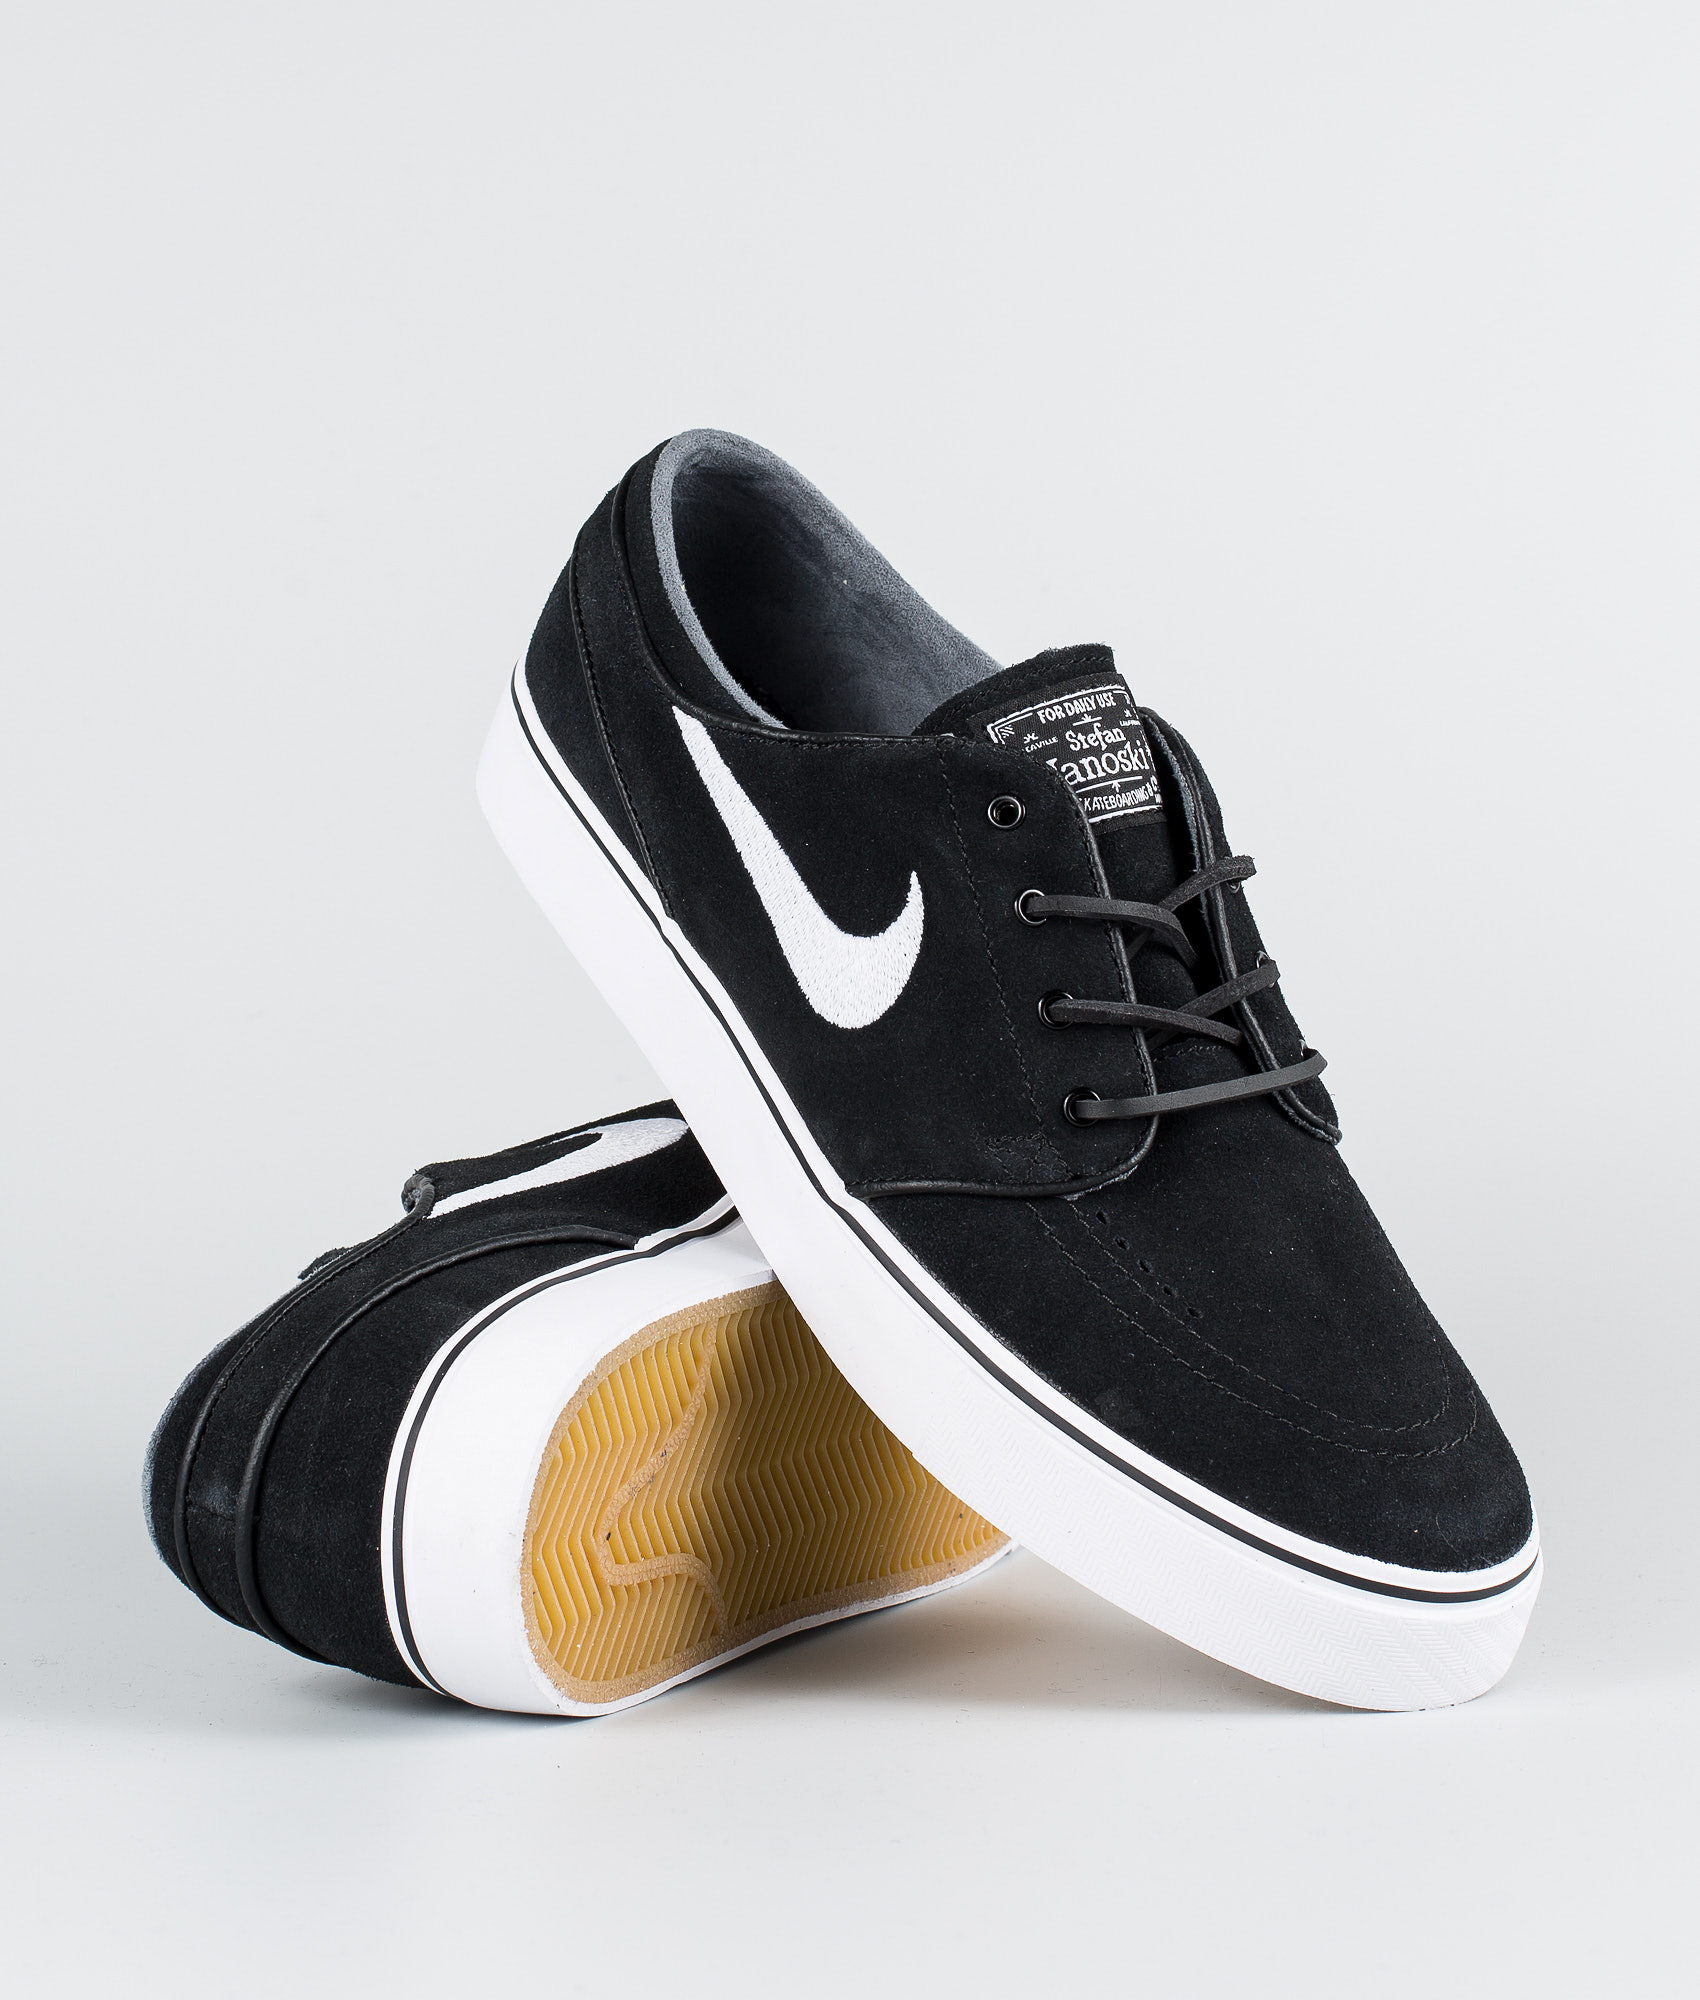 pretty nice 4c9b4 bdcf2 Nike Zoom Stefan Janoski Og Shoes Black. Black White-Gum Light Brown